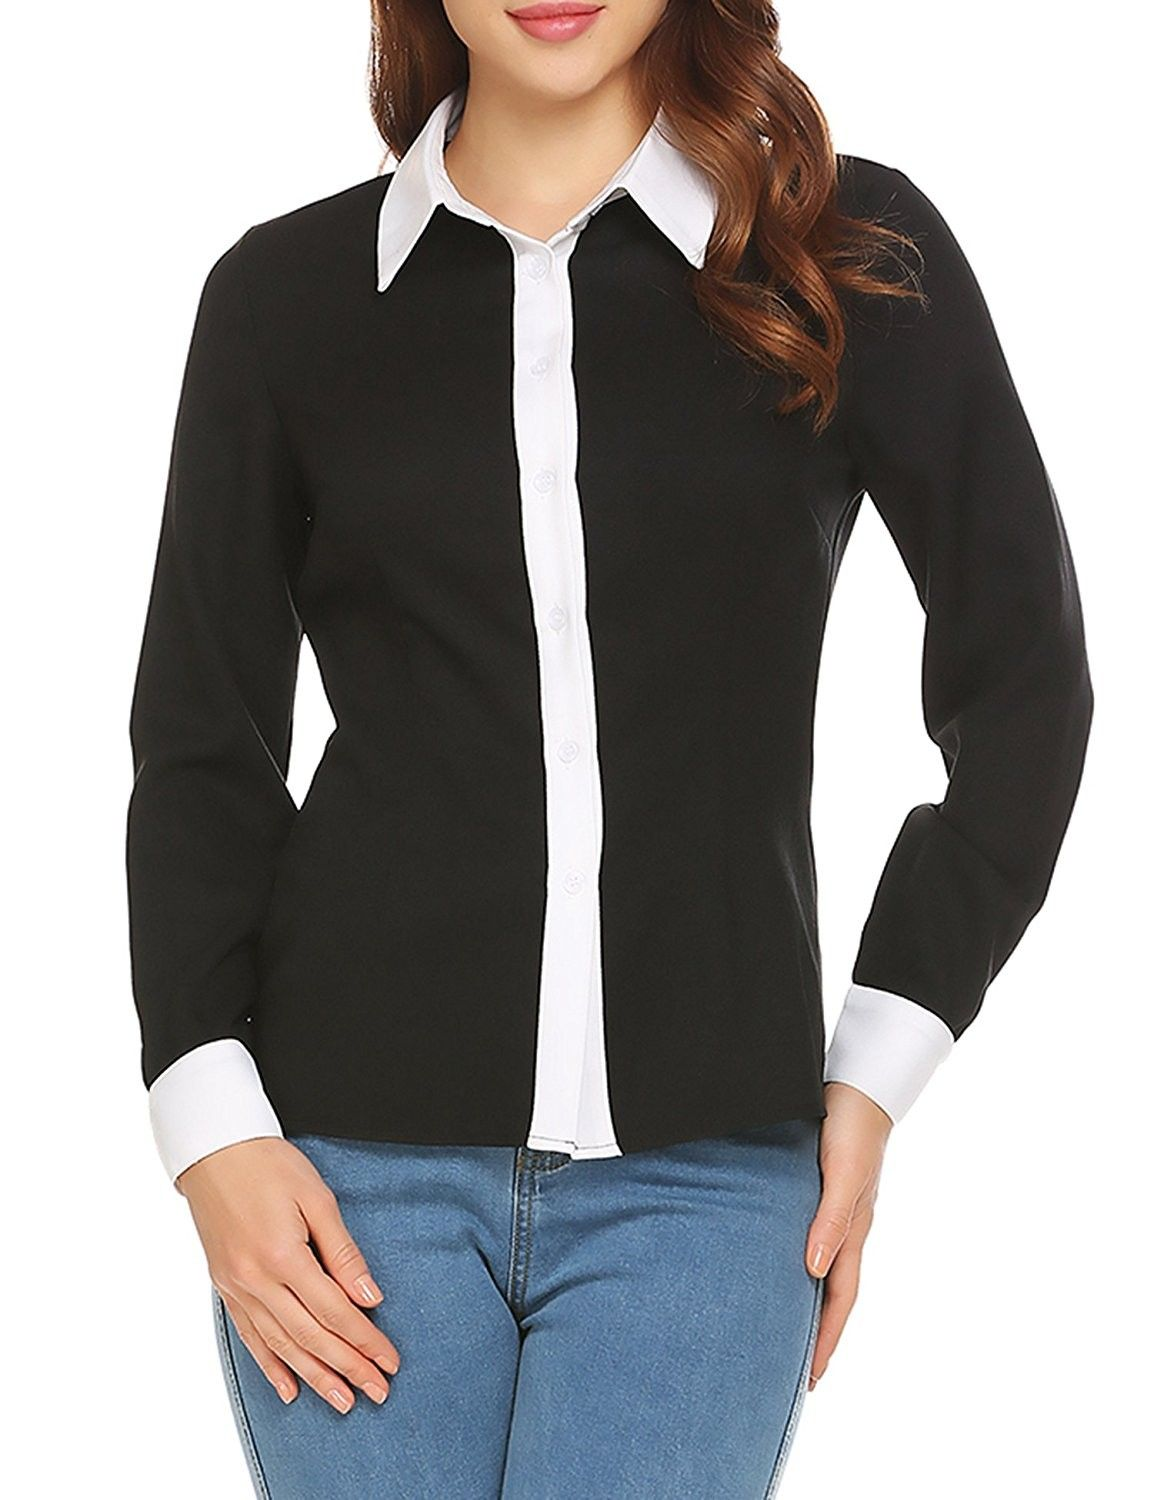 Women S Tailored Long Sleeve Button Down Collared Office Shirt Blouse Black C4189uzll37 The Office Shirts Black Blouse Tailored Blouses [ 1500 x 1154 Pixel ]